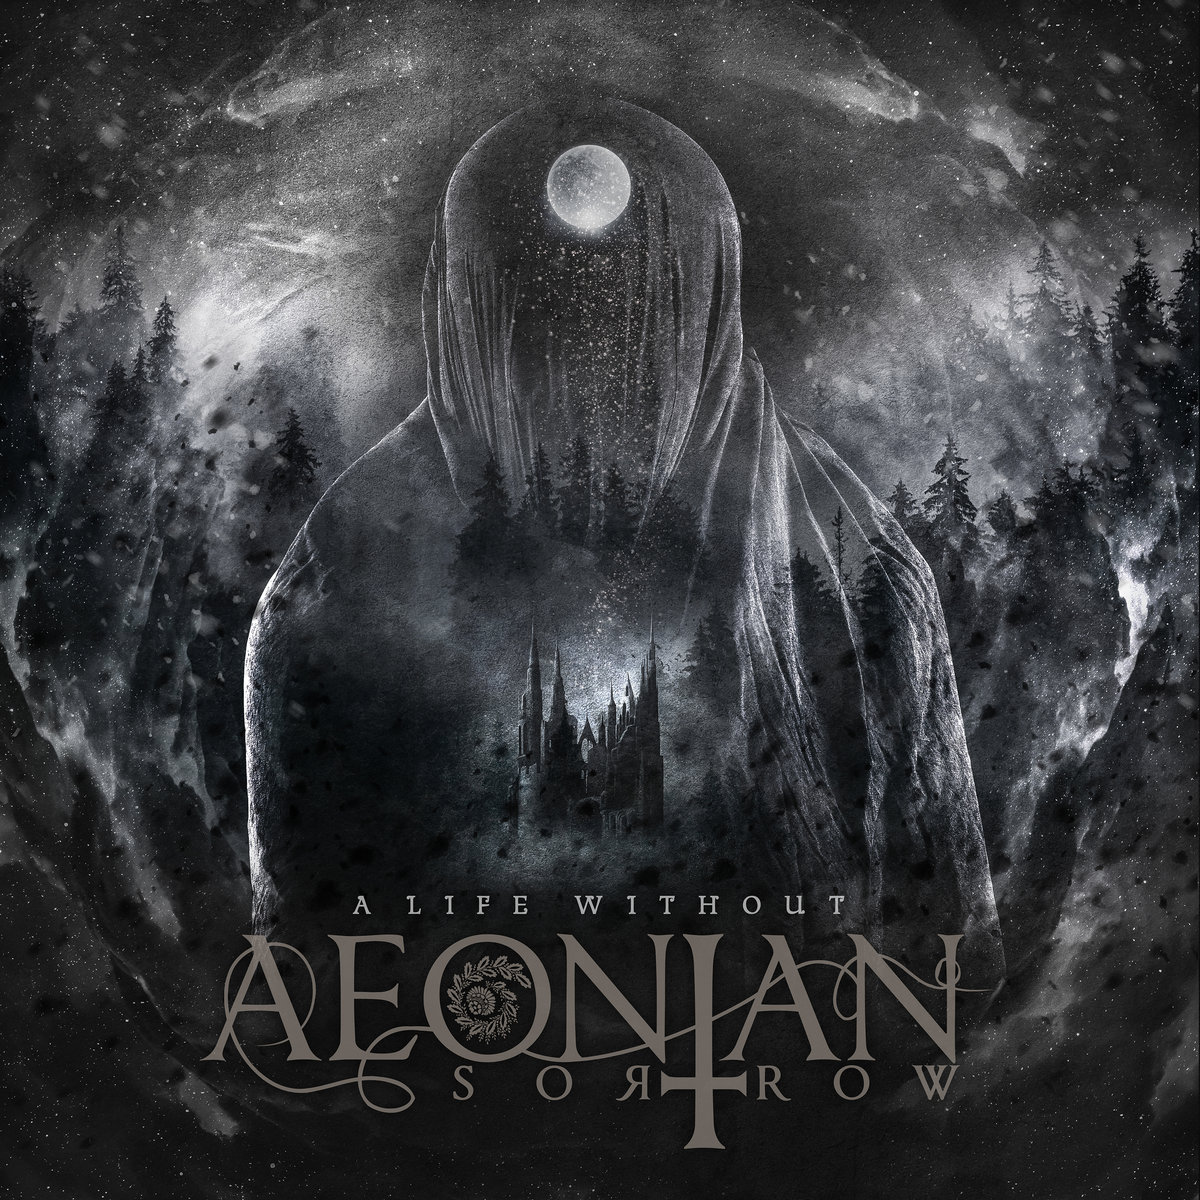 aeonian sorrow a life without EP cover art